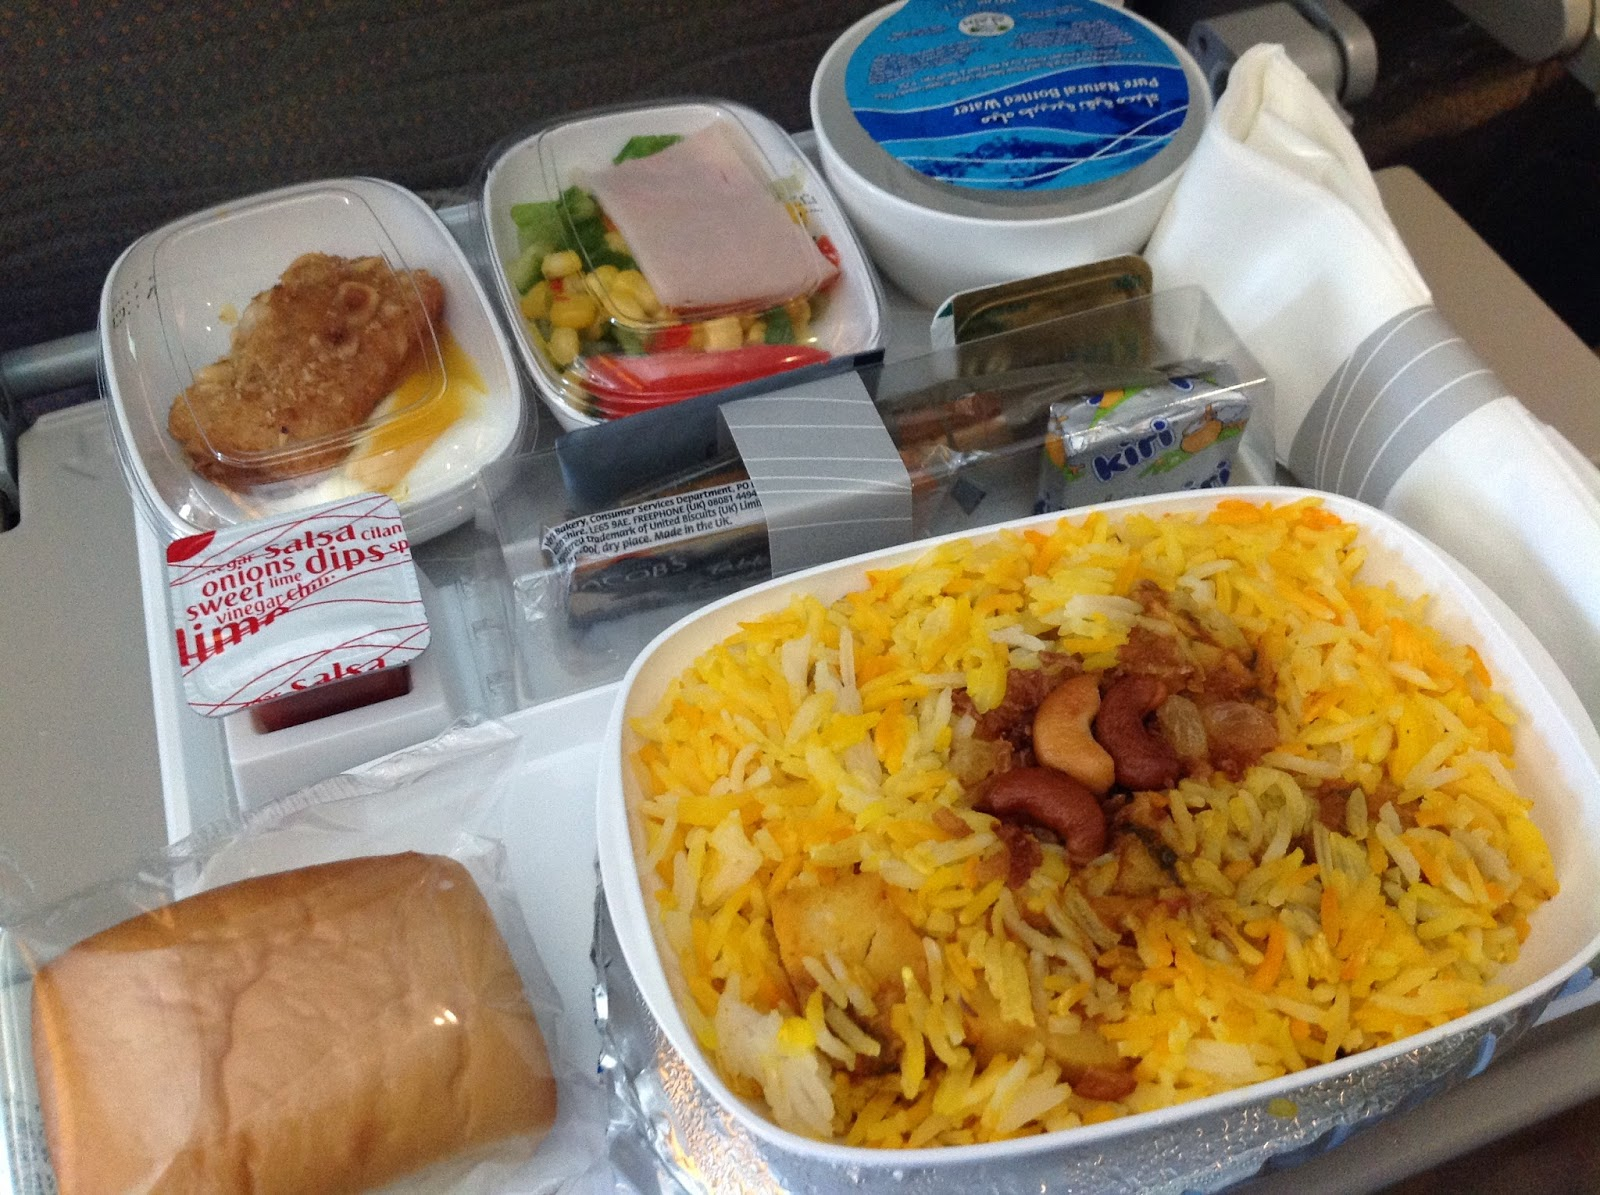 Emirates-EK059-in-flight-meal-lunch エミレーツの機内食(昼食)